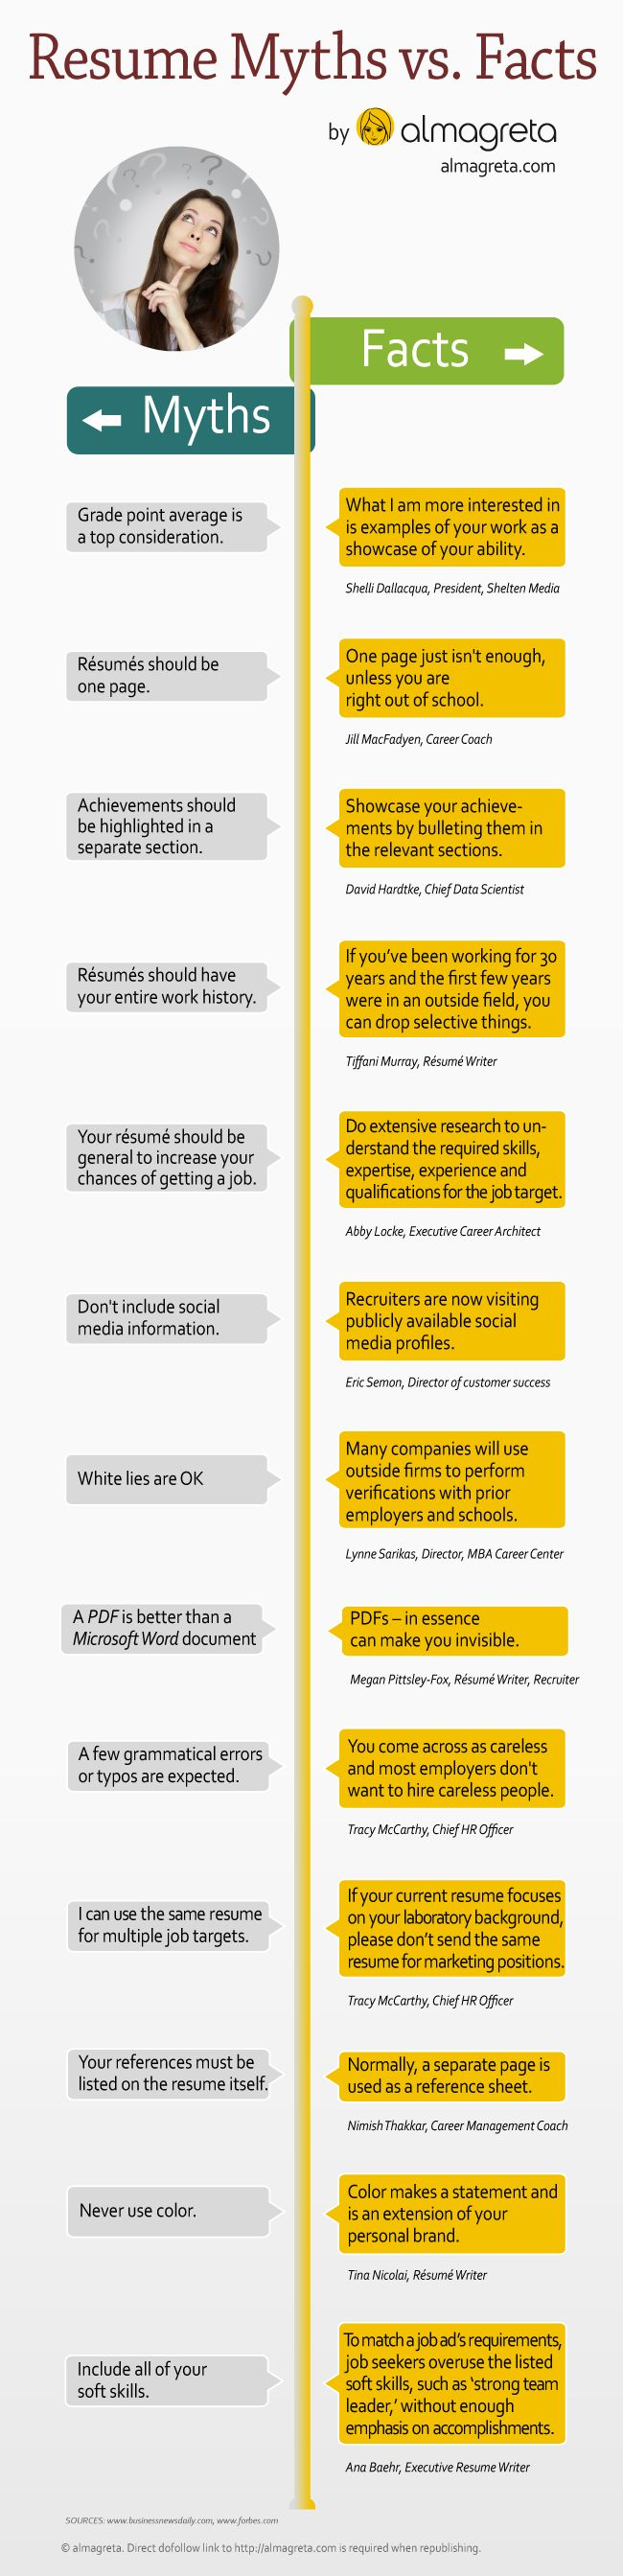 Resume Myths vs Facts [INFOGRAPHIC] on http://theundercoverrecruiter.com